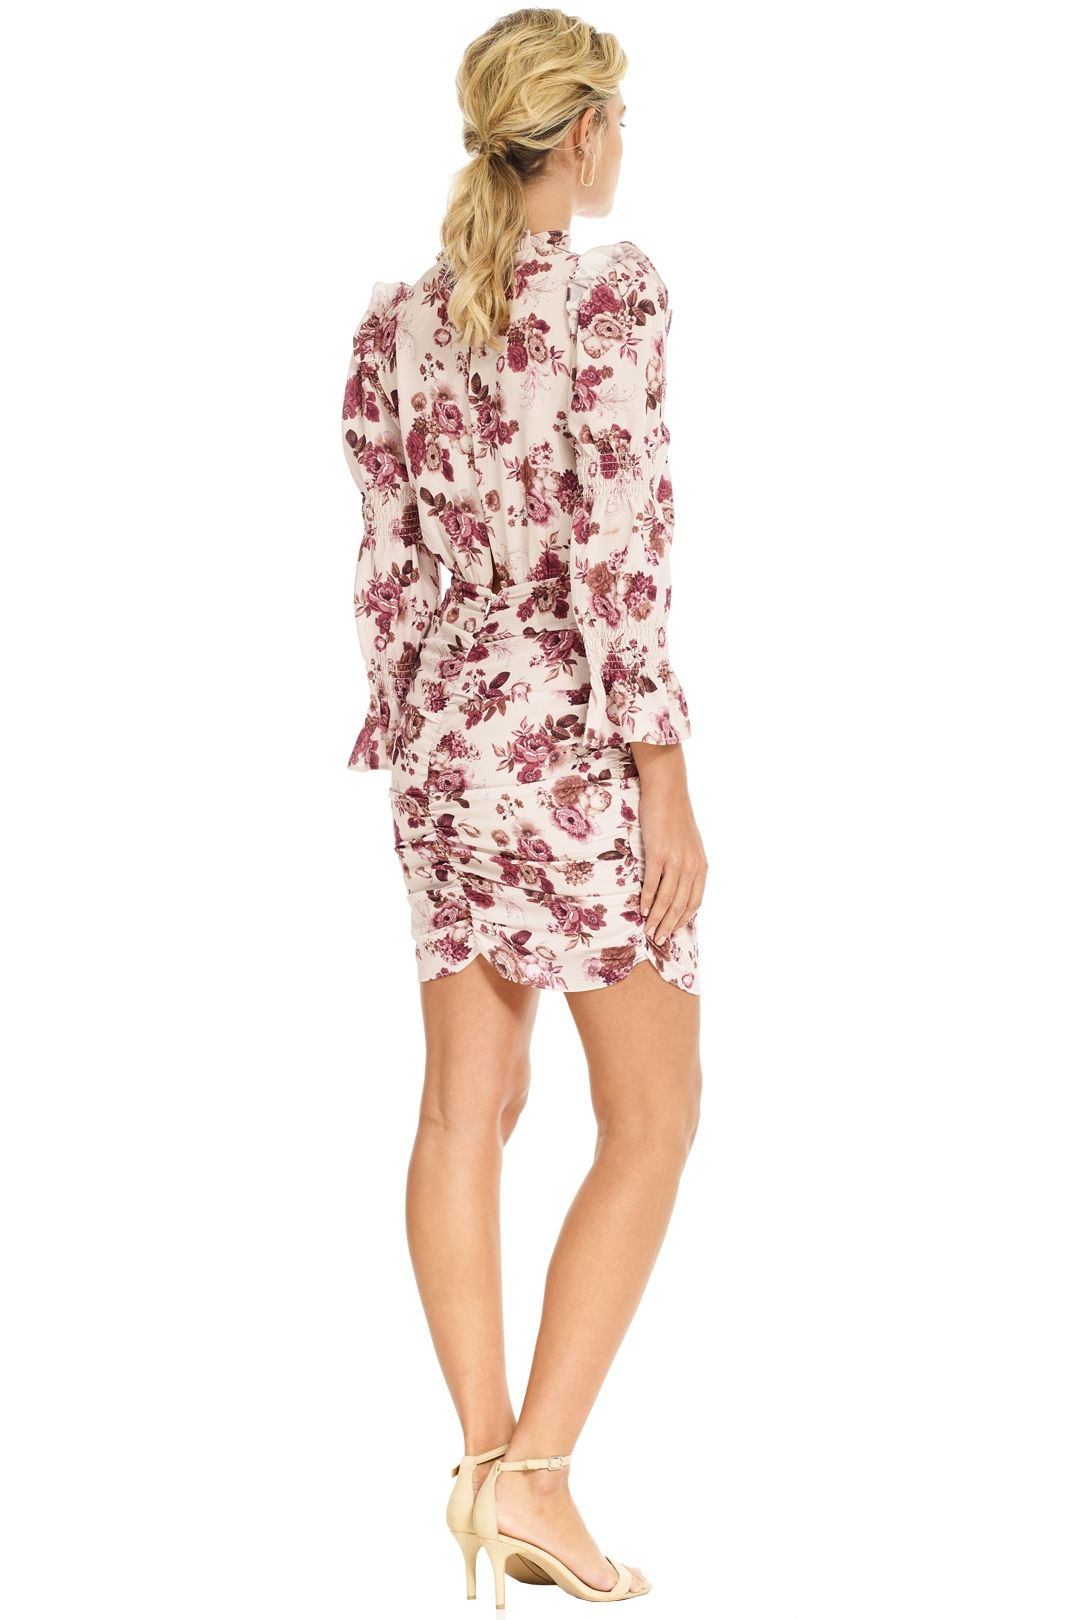 Pasduchas - Valencia Dress - Blush Floral - Back